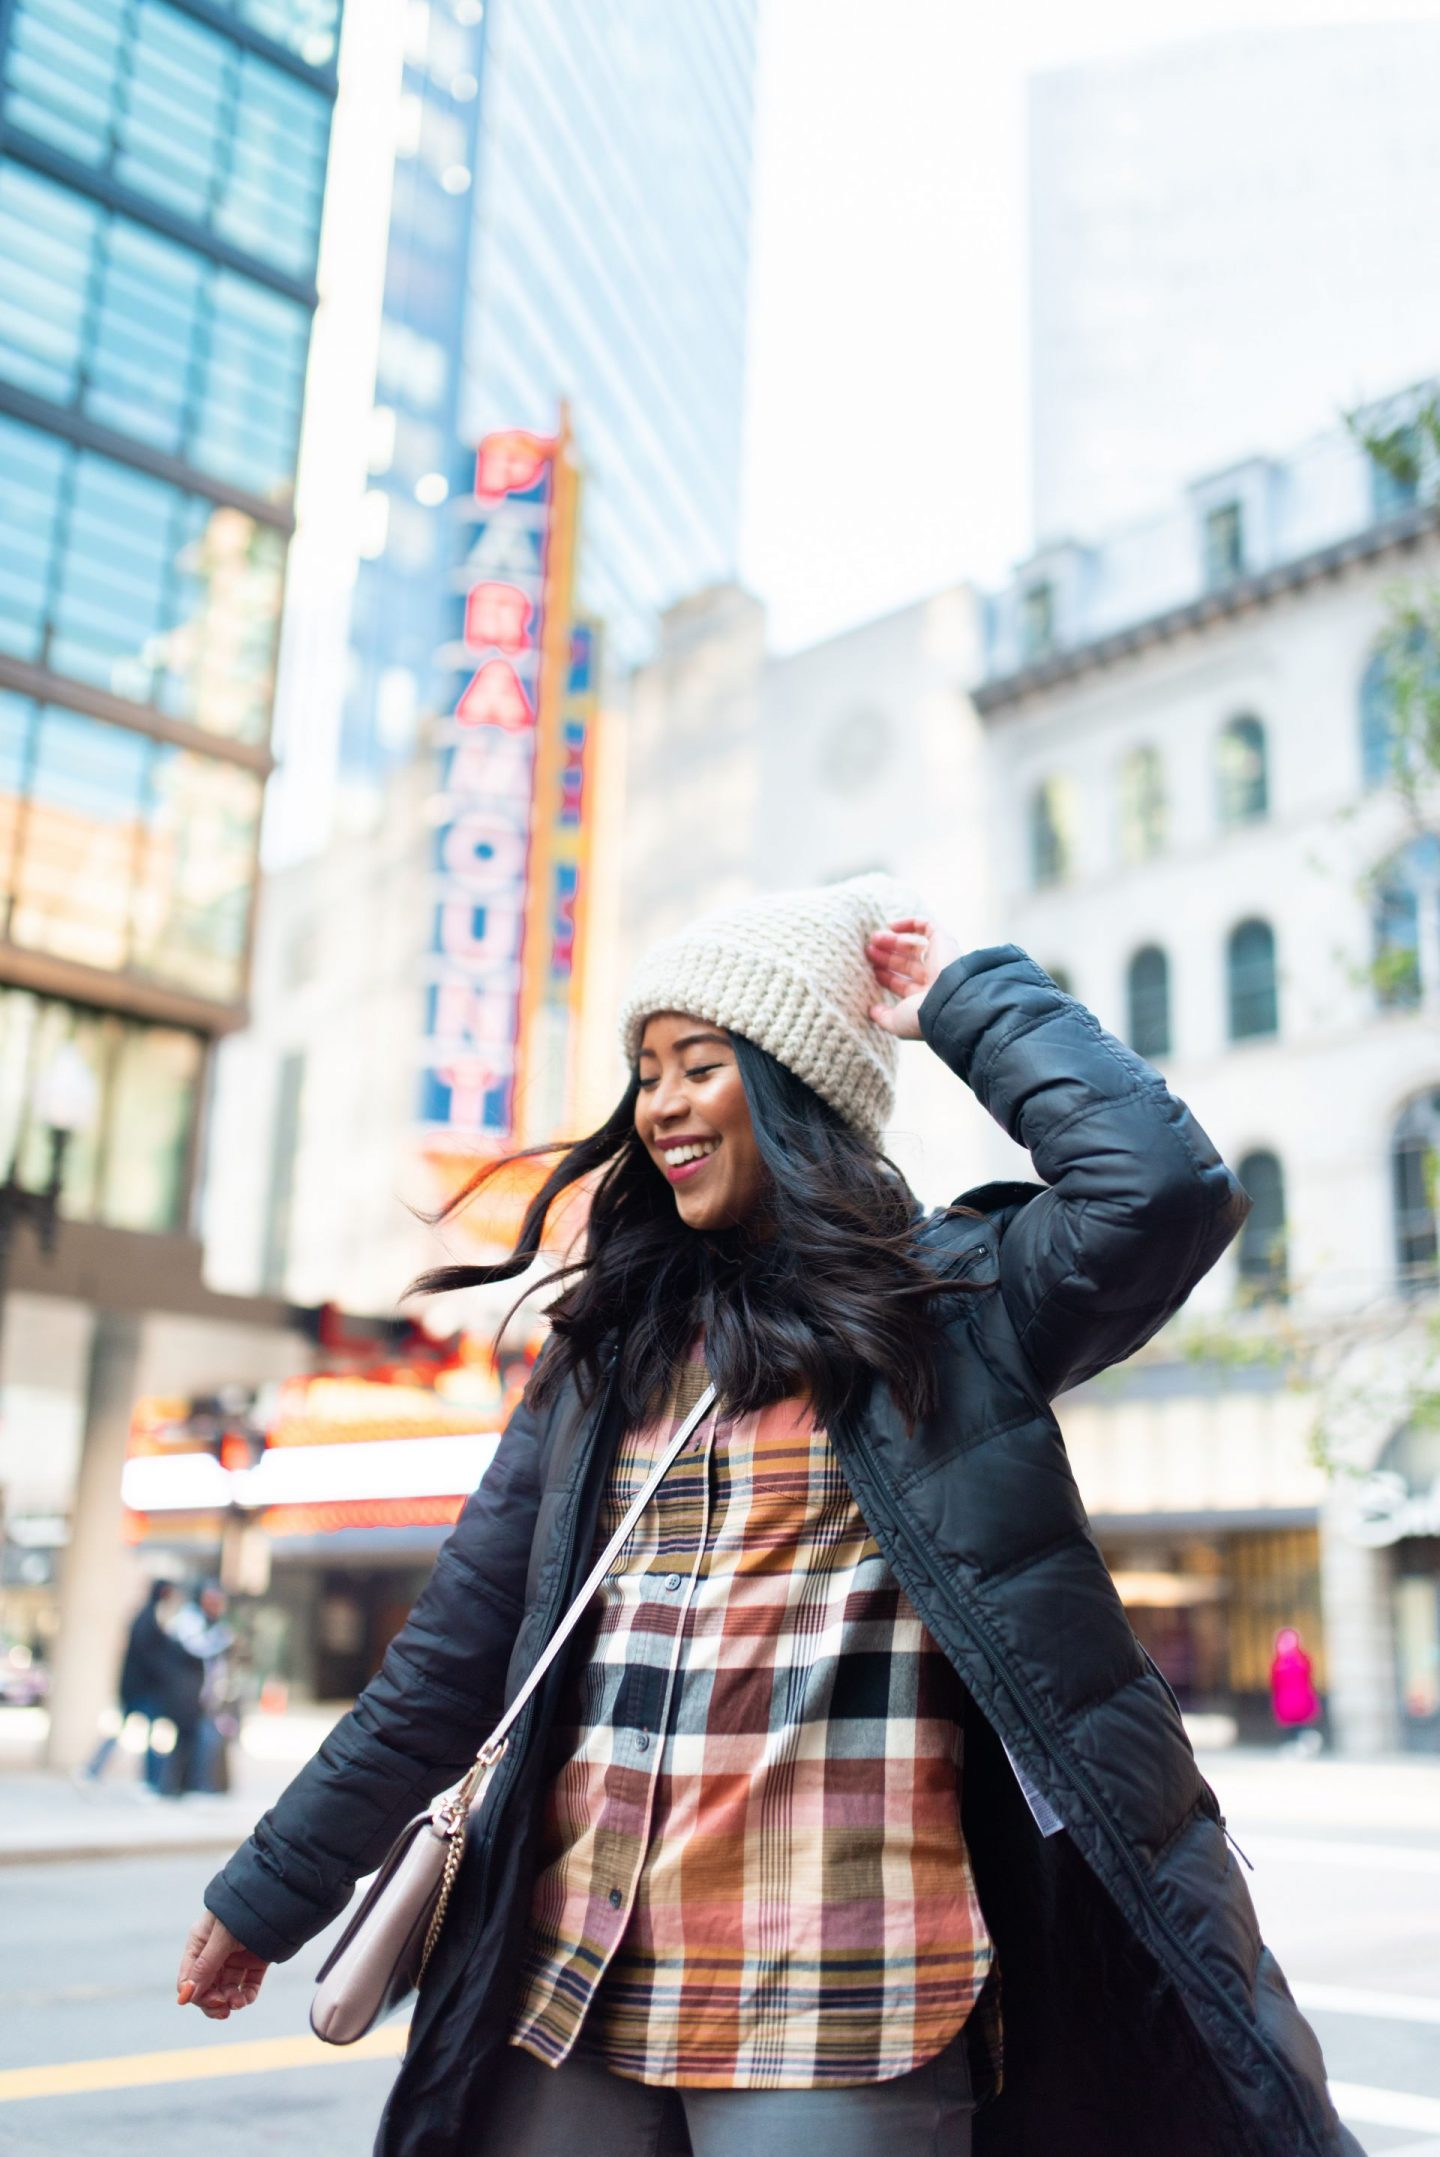 5 Lessons I've Learned from Gifted Brand Collaborations